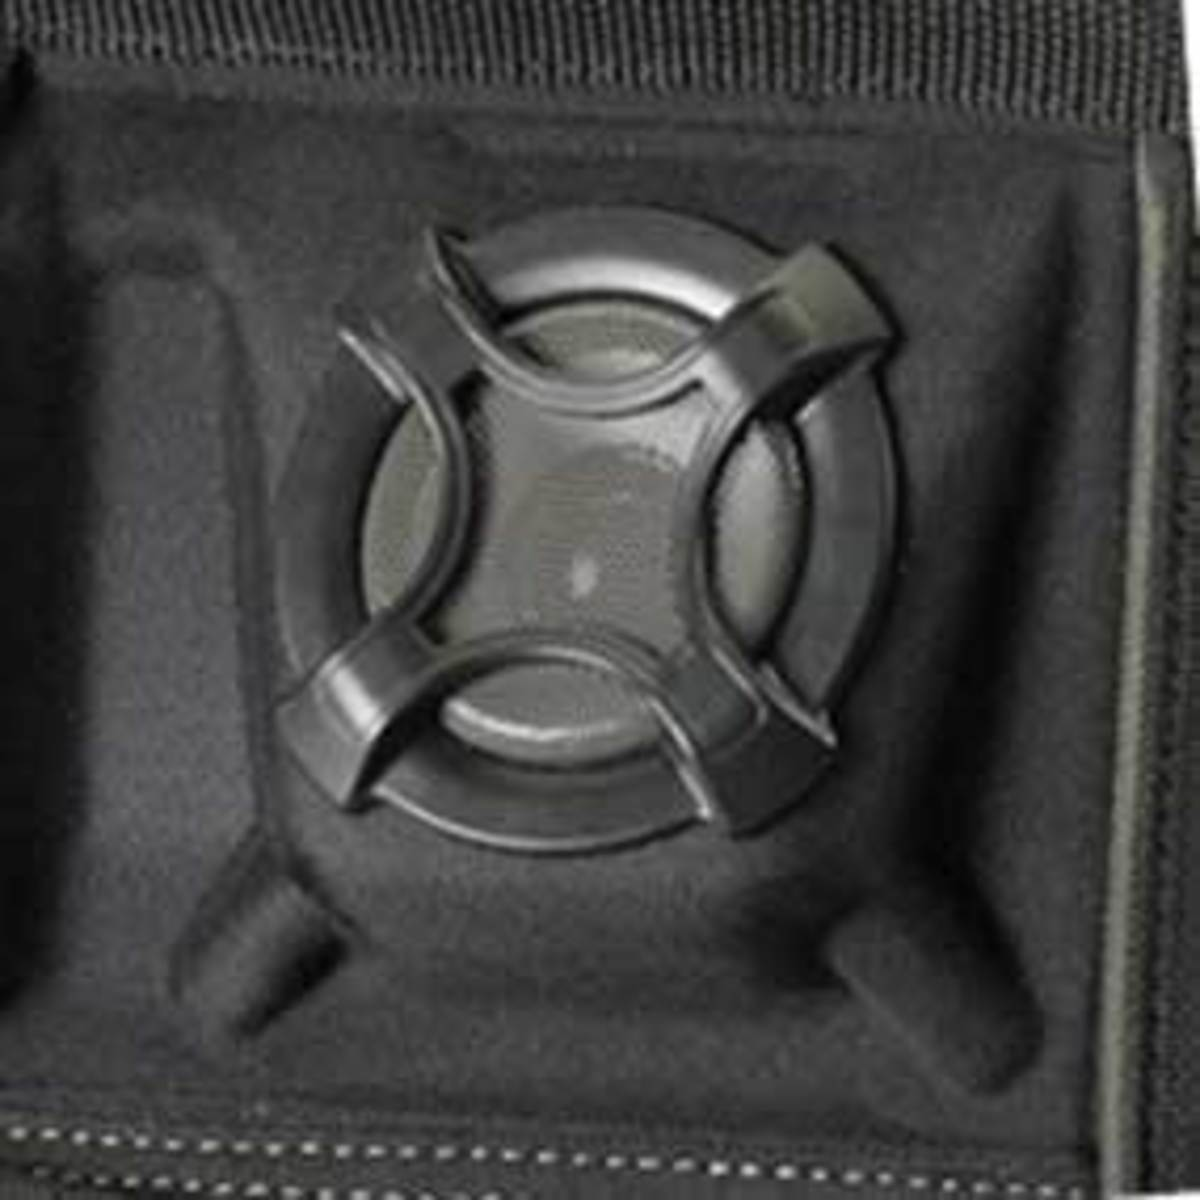 A close-up look at the speakers of the Custom Leathercraft A233.